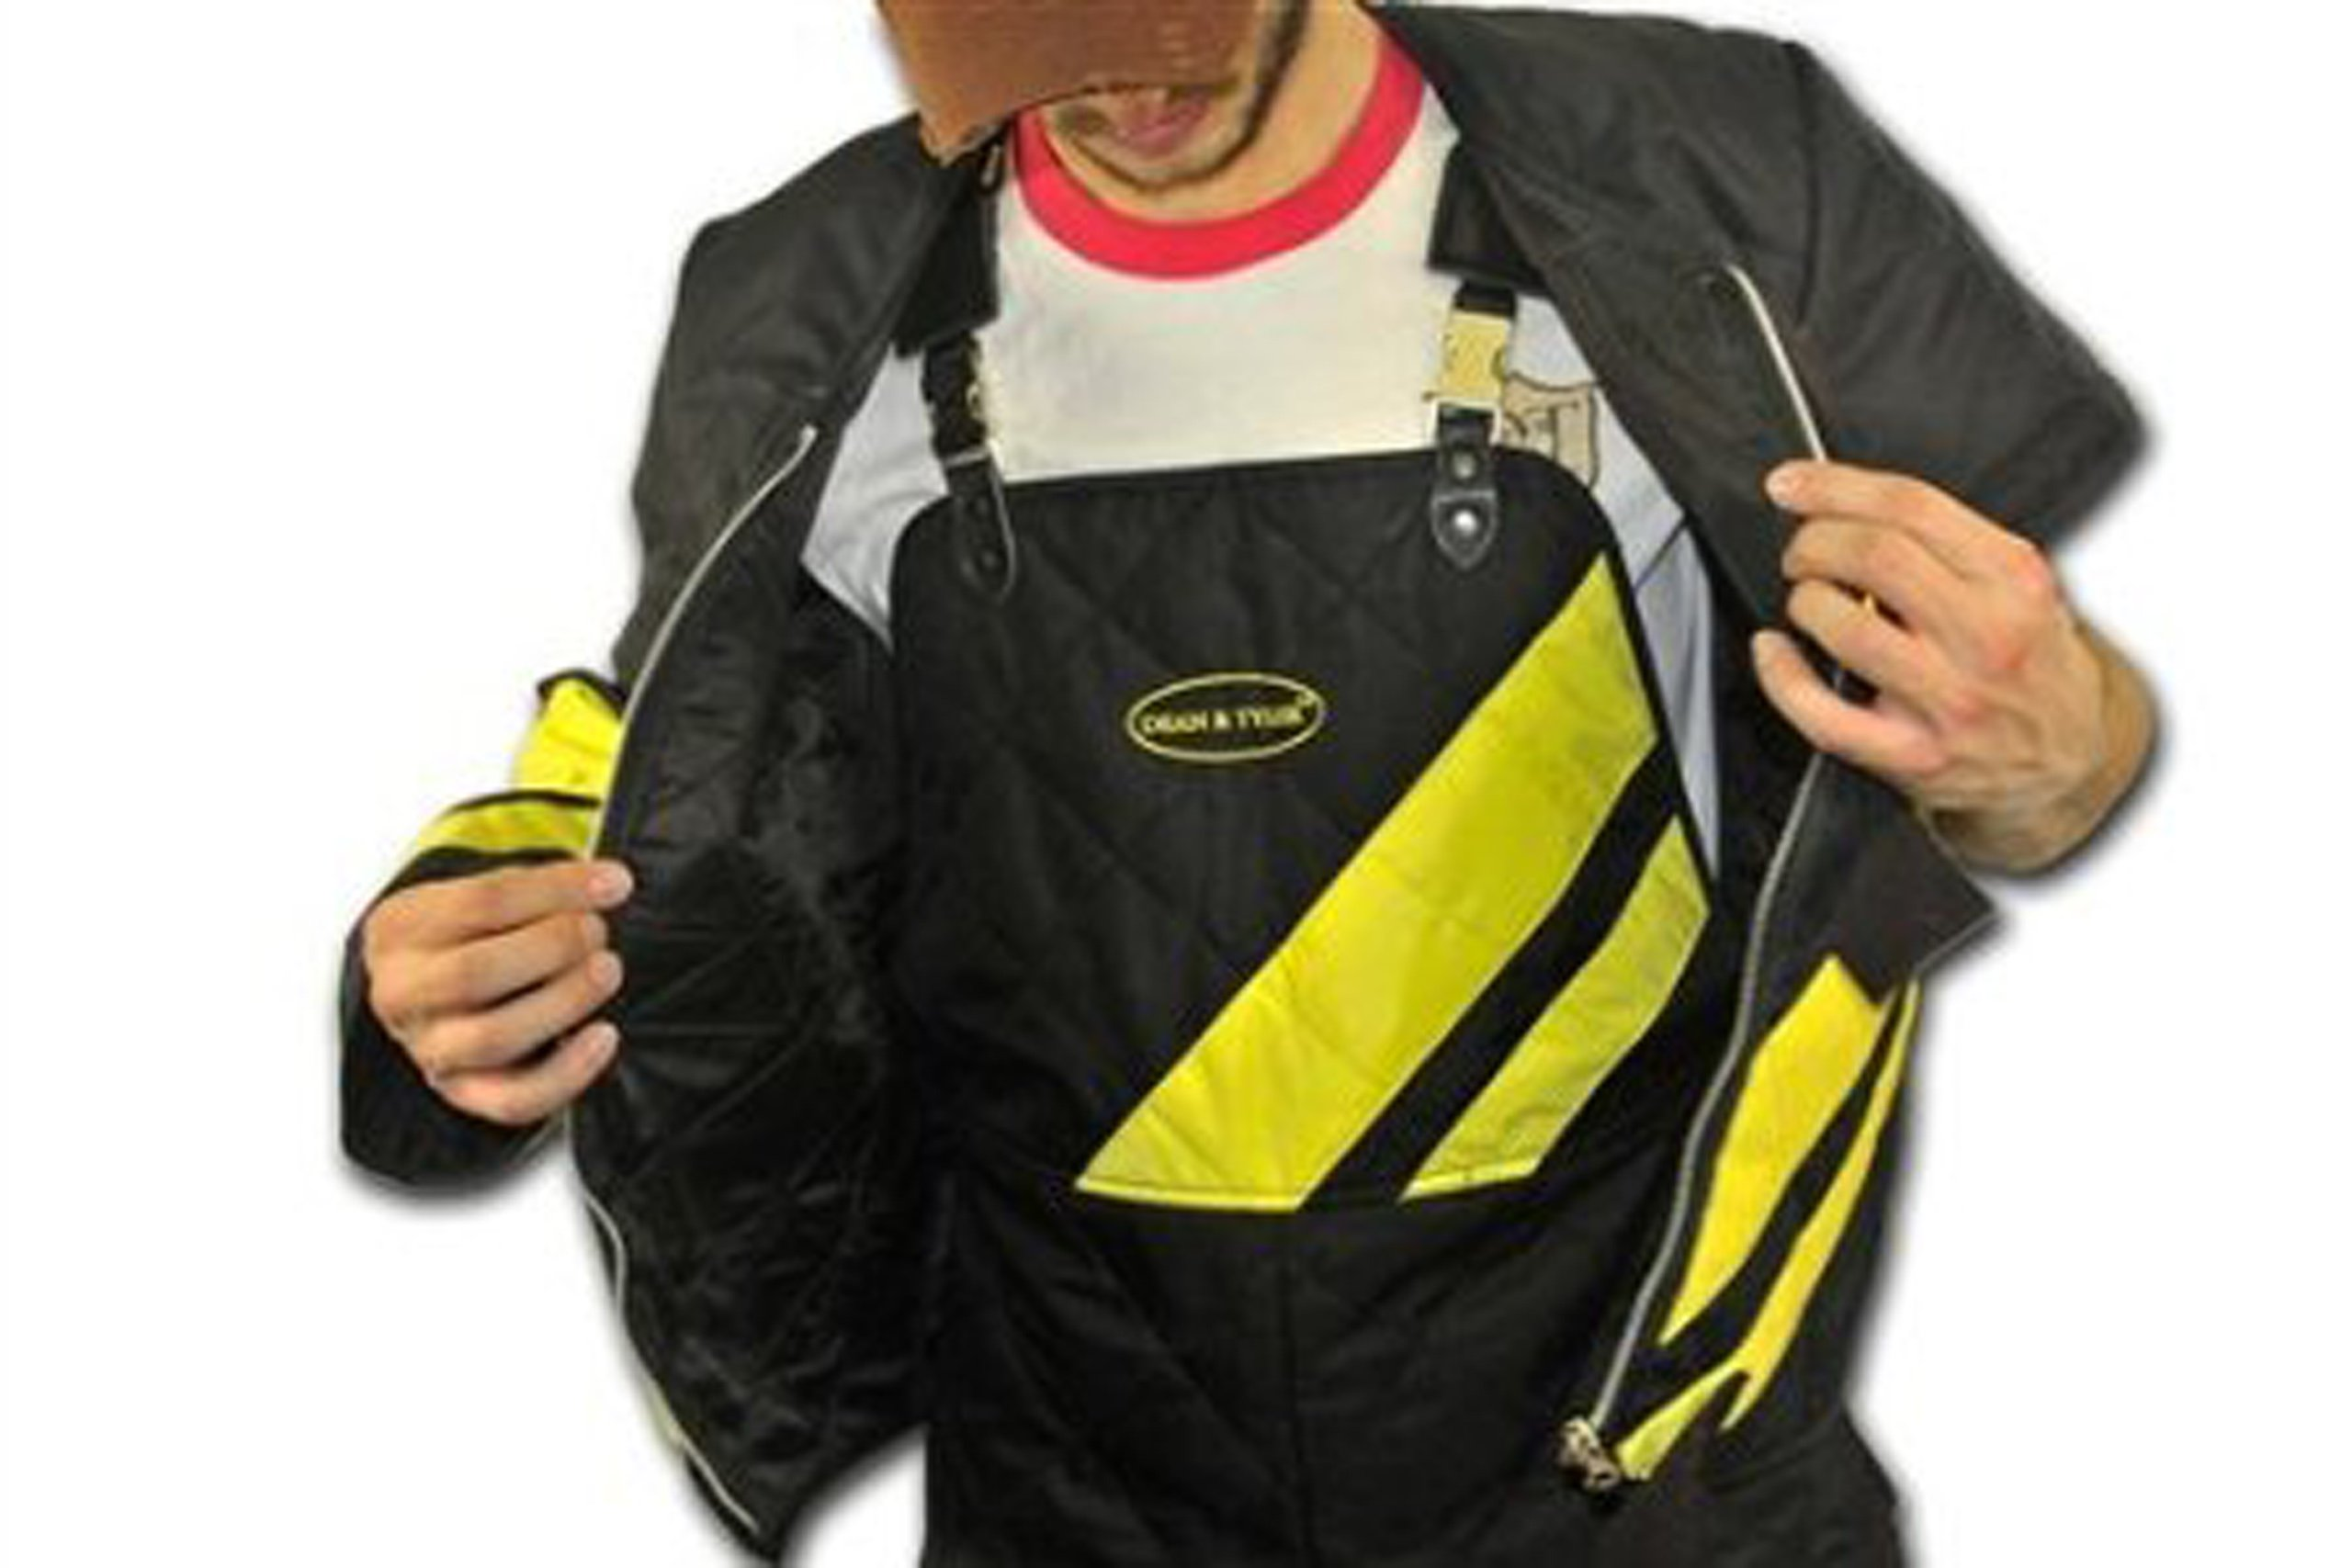 Dean and Tyler Scratch Suit, Neoprene Nylon - Black/Yellow - Size: Large (J: 42-Inch, P: 36-Inch) by Dean & Tyler (Image #4)